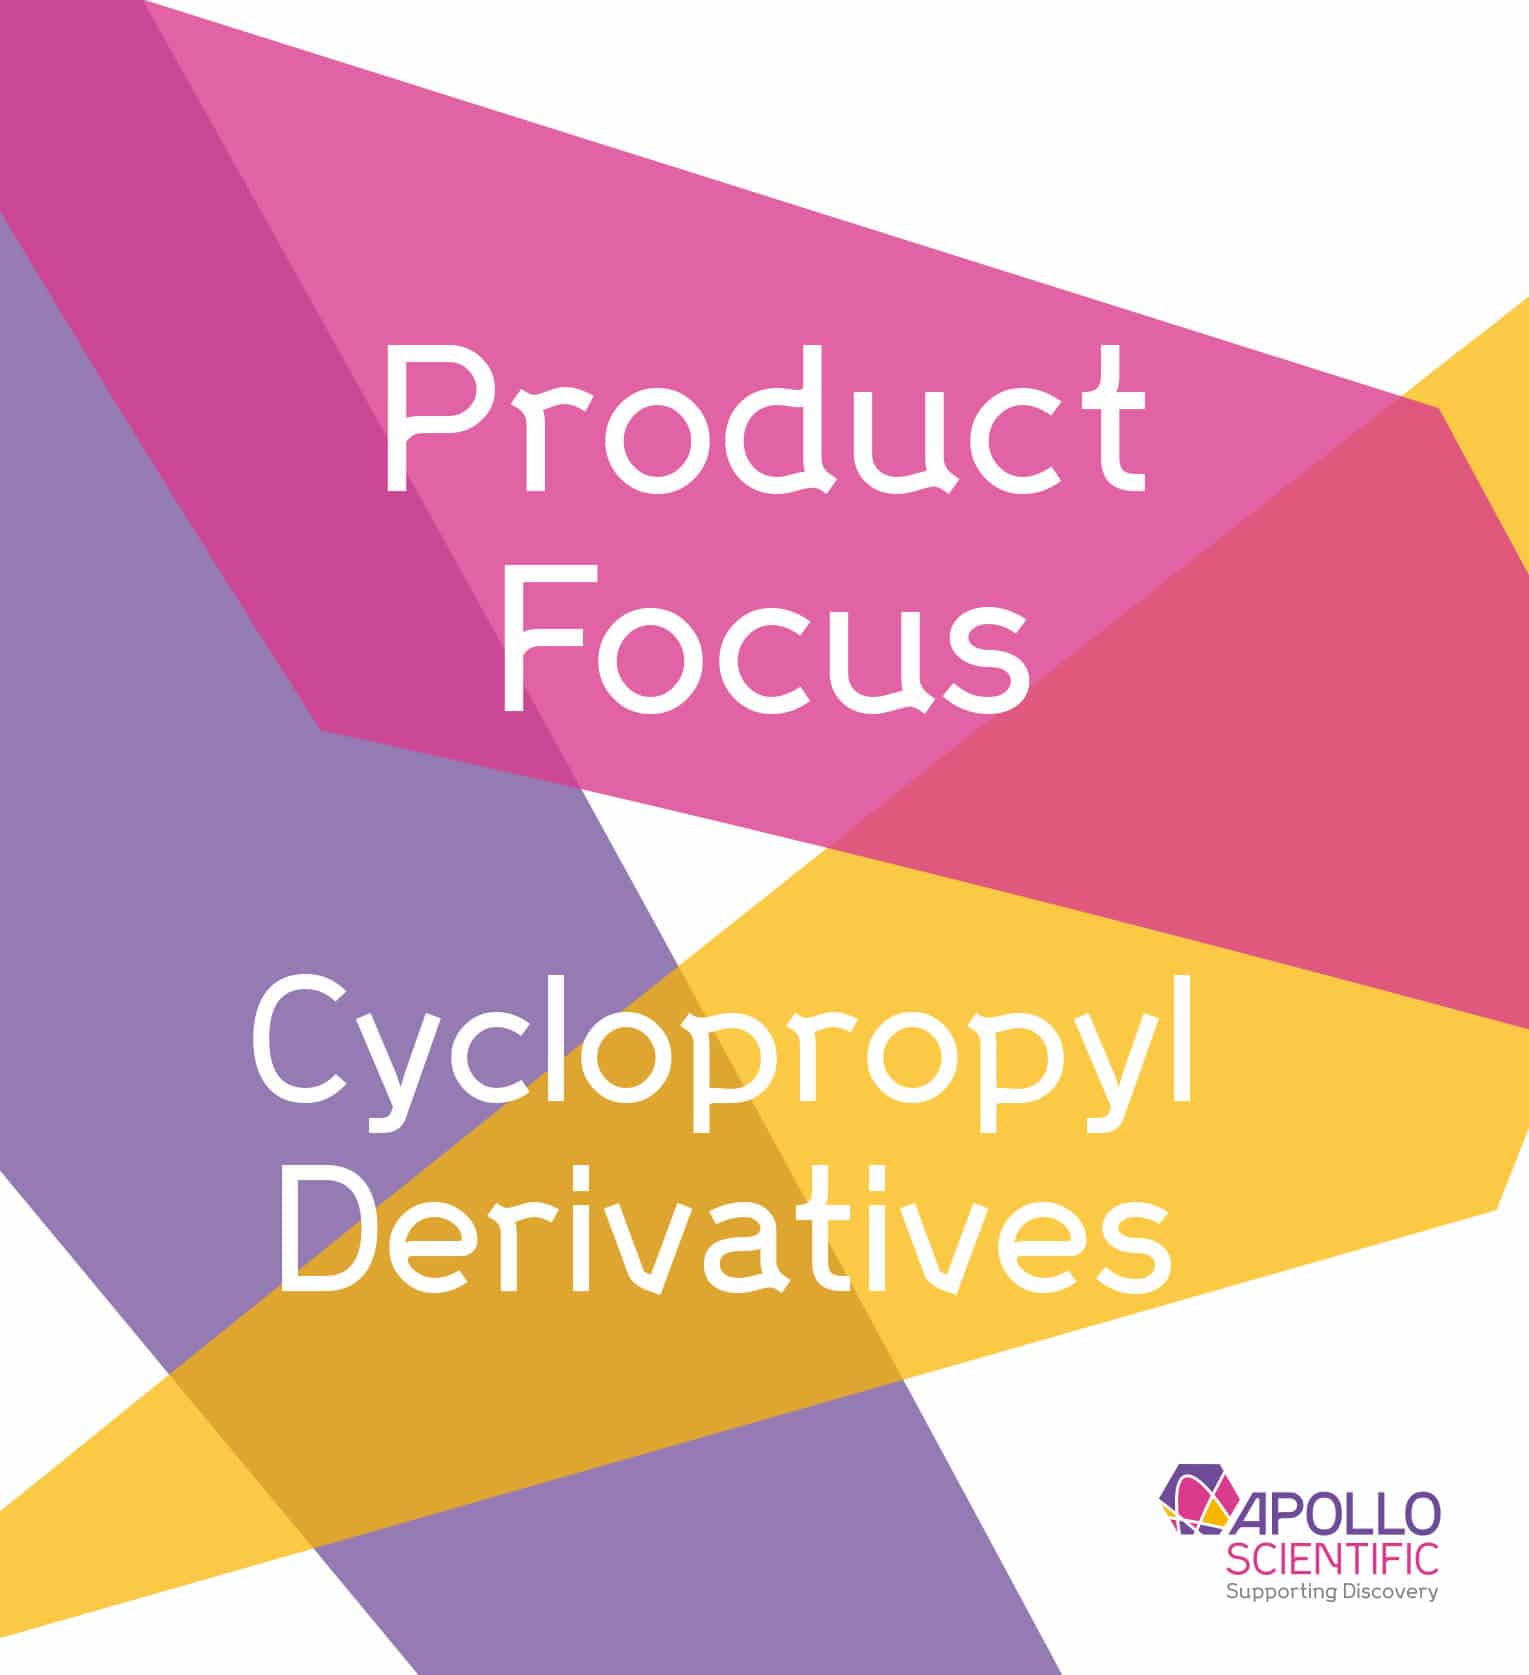 Product Focus – Cyclopropyl Derivatives thumbnail image